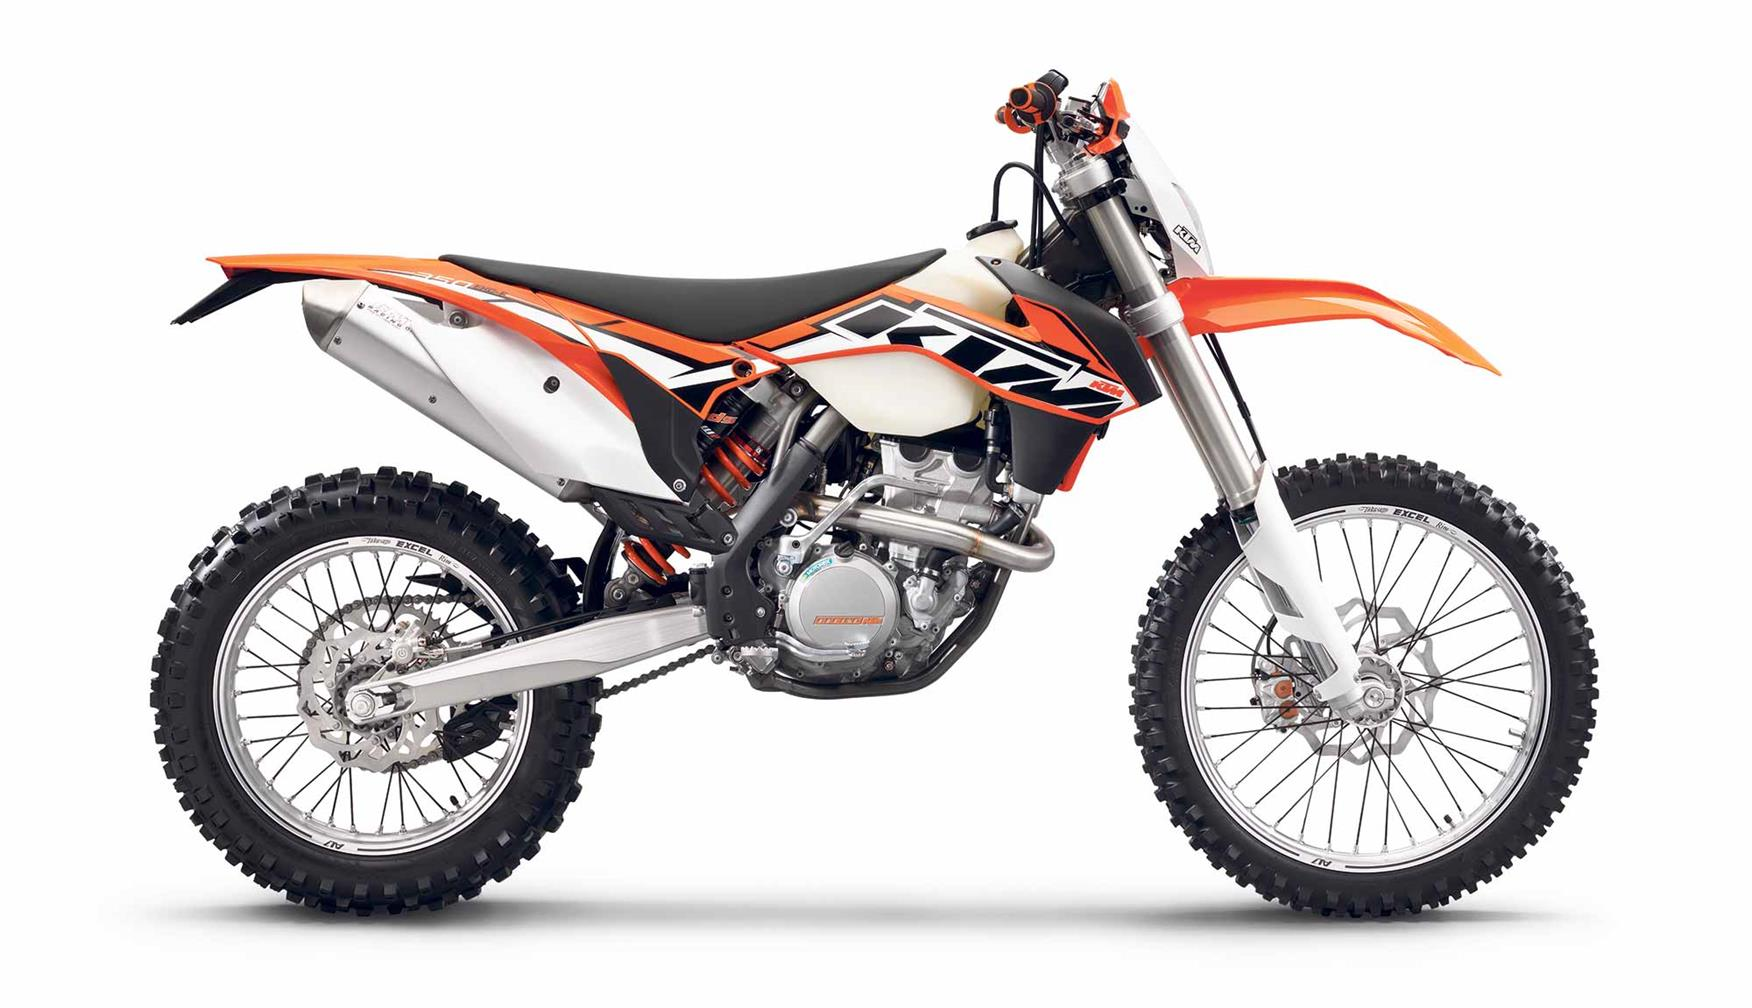 Flint owned a KTM 350EXC